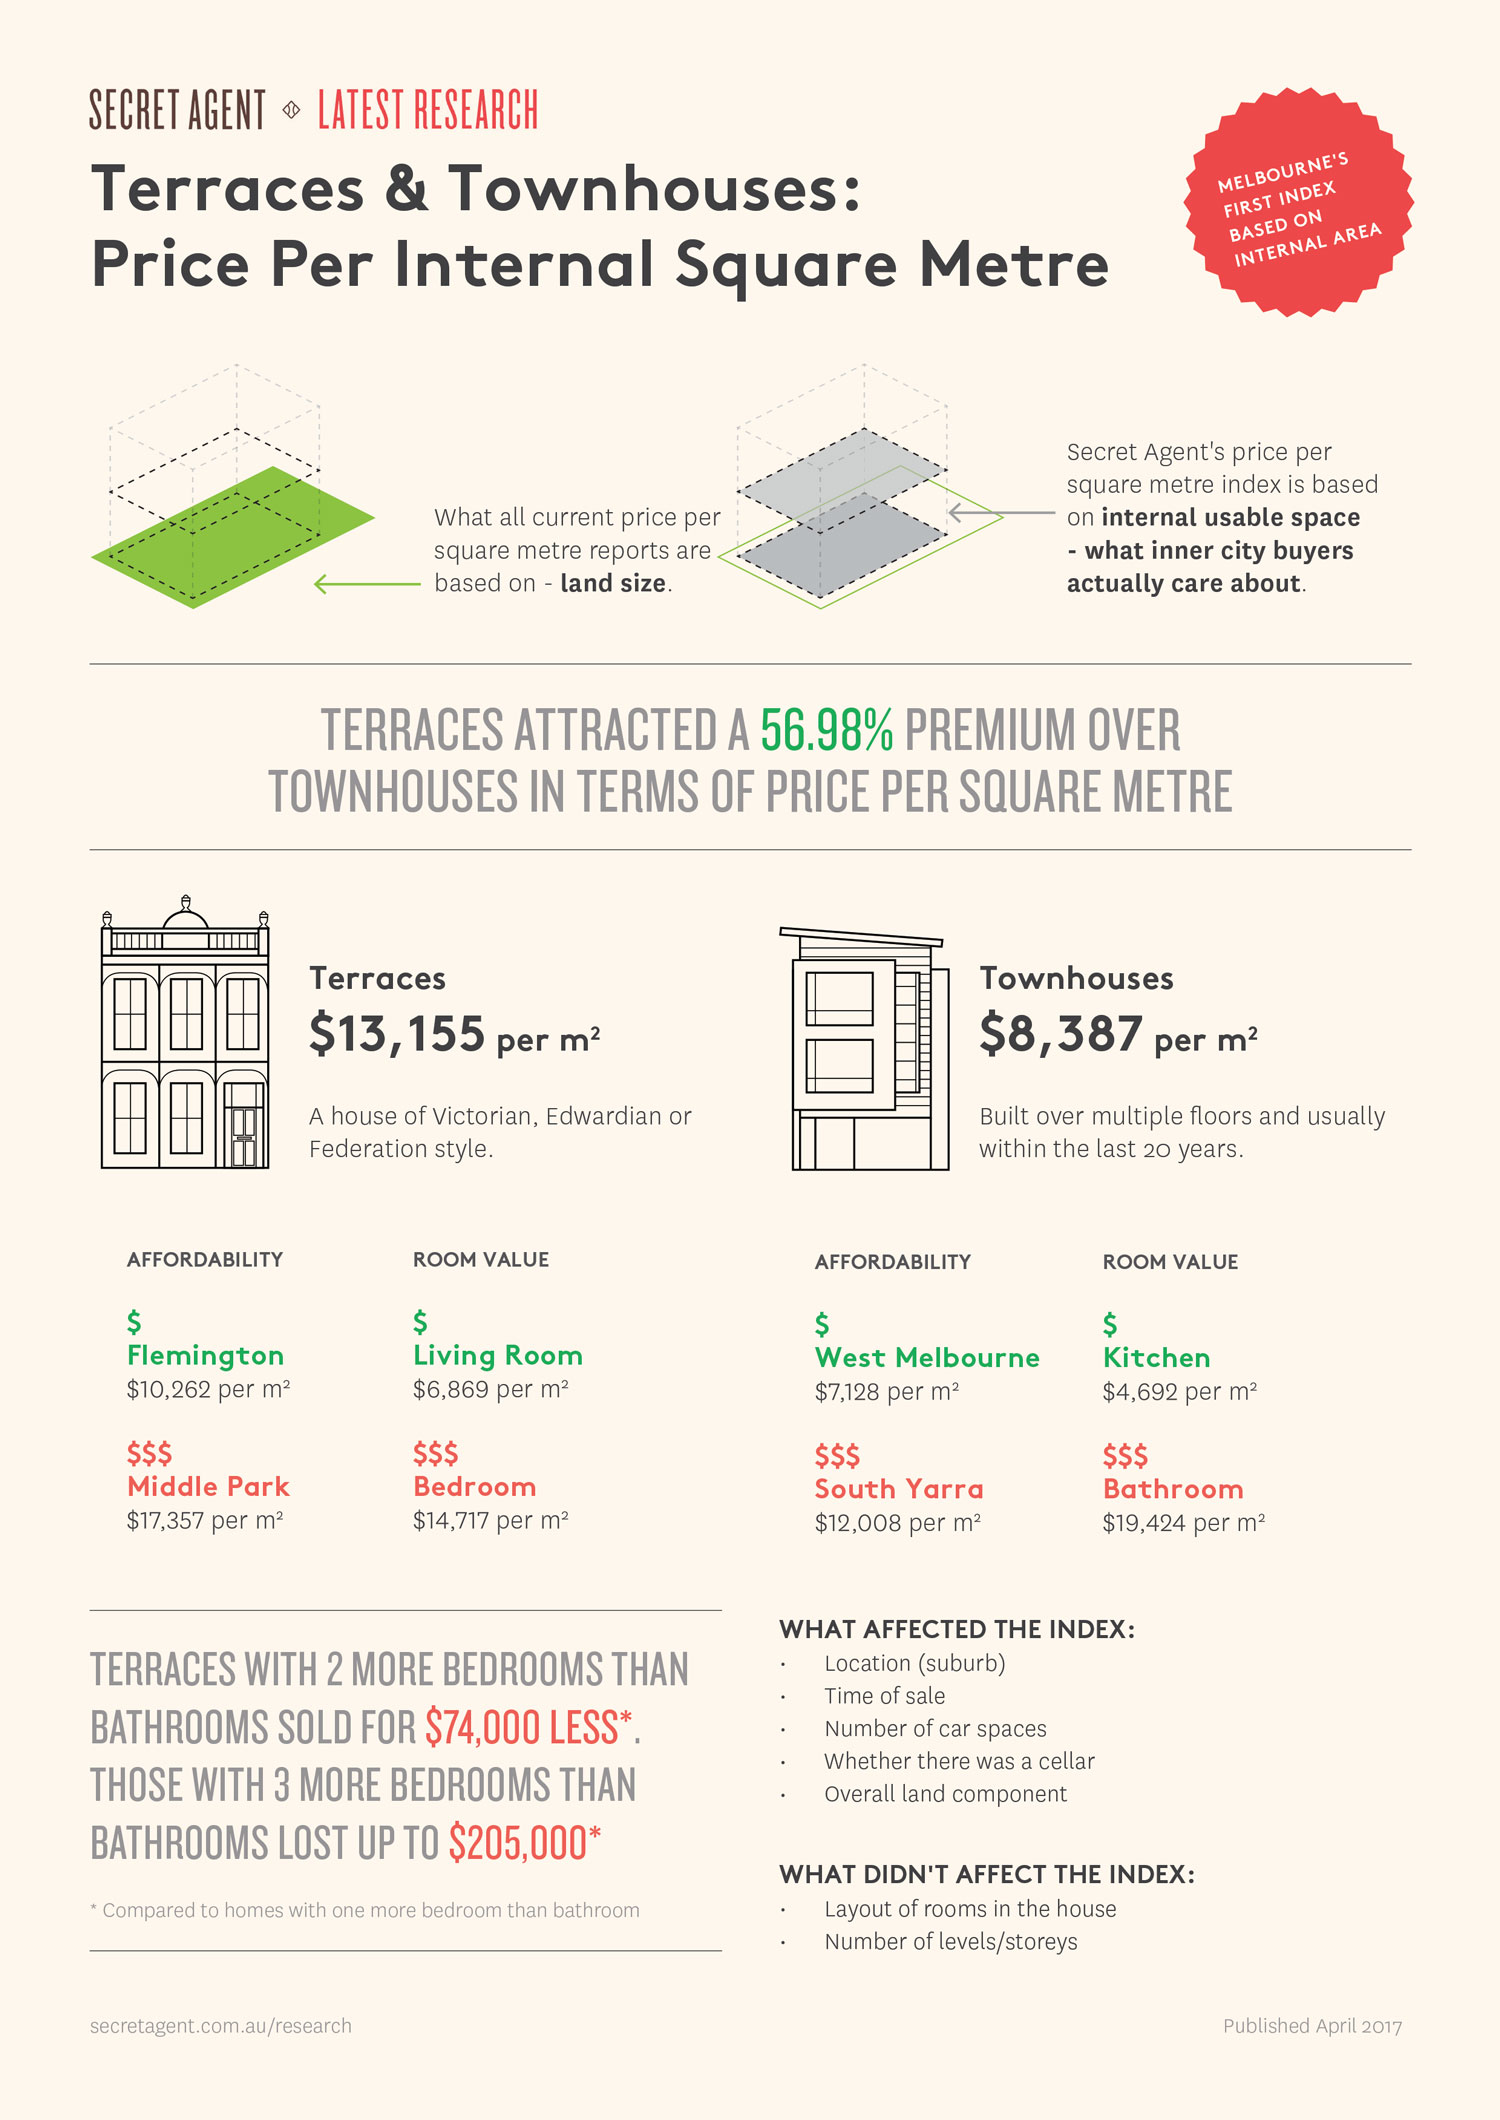 Price Per Internal Square Metre of Terraces and Townhouses Secret Agent